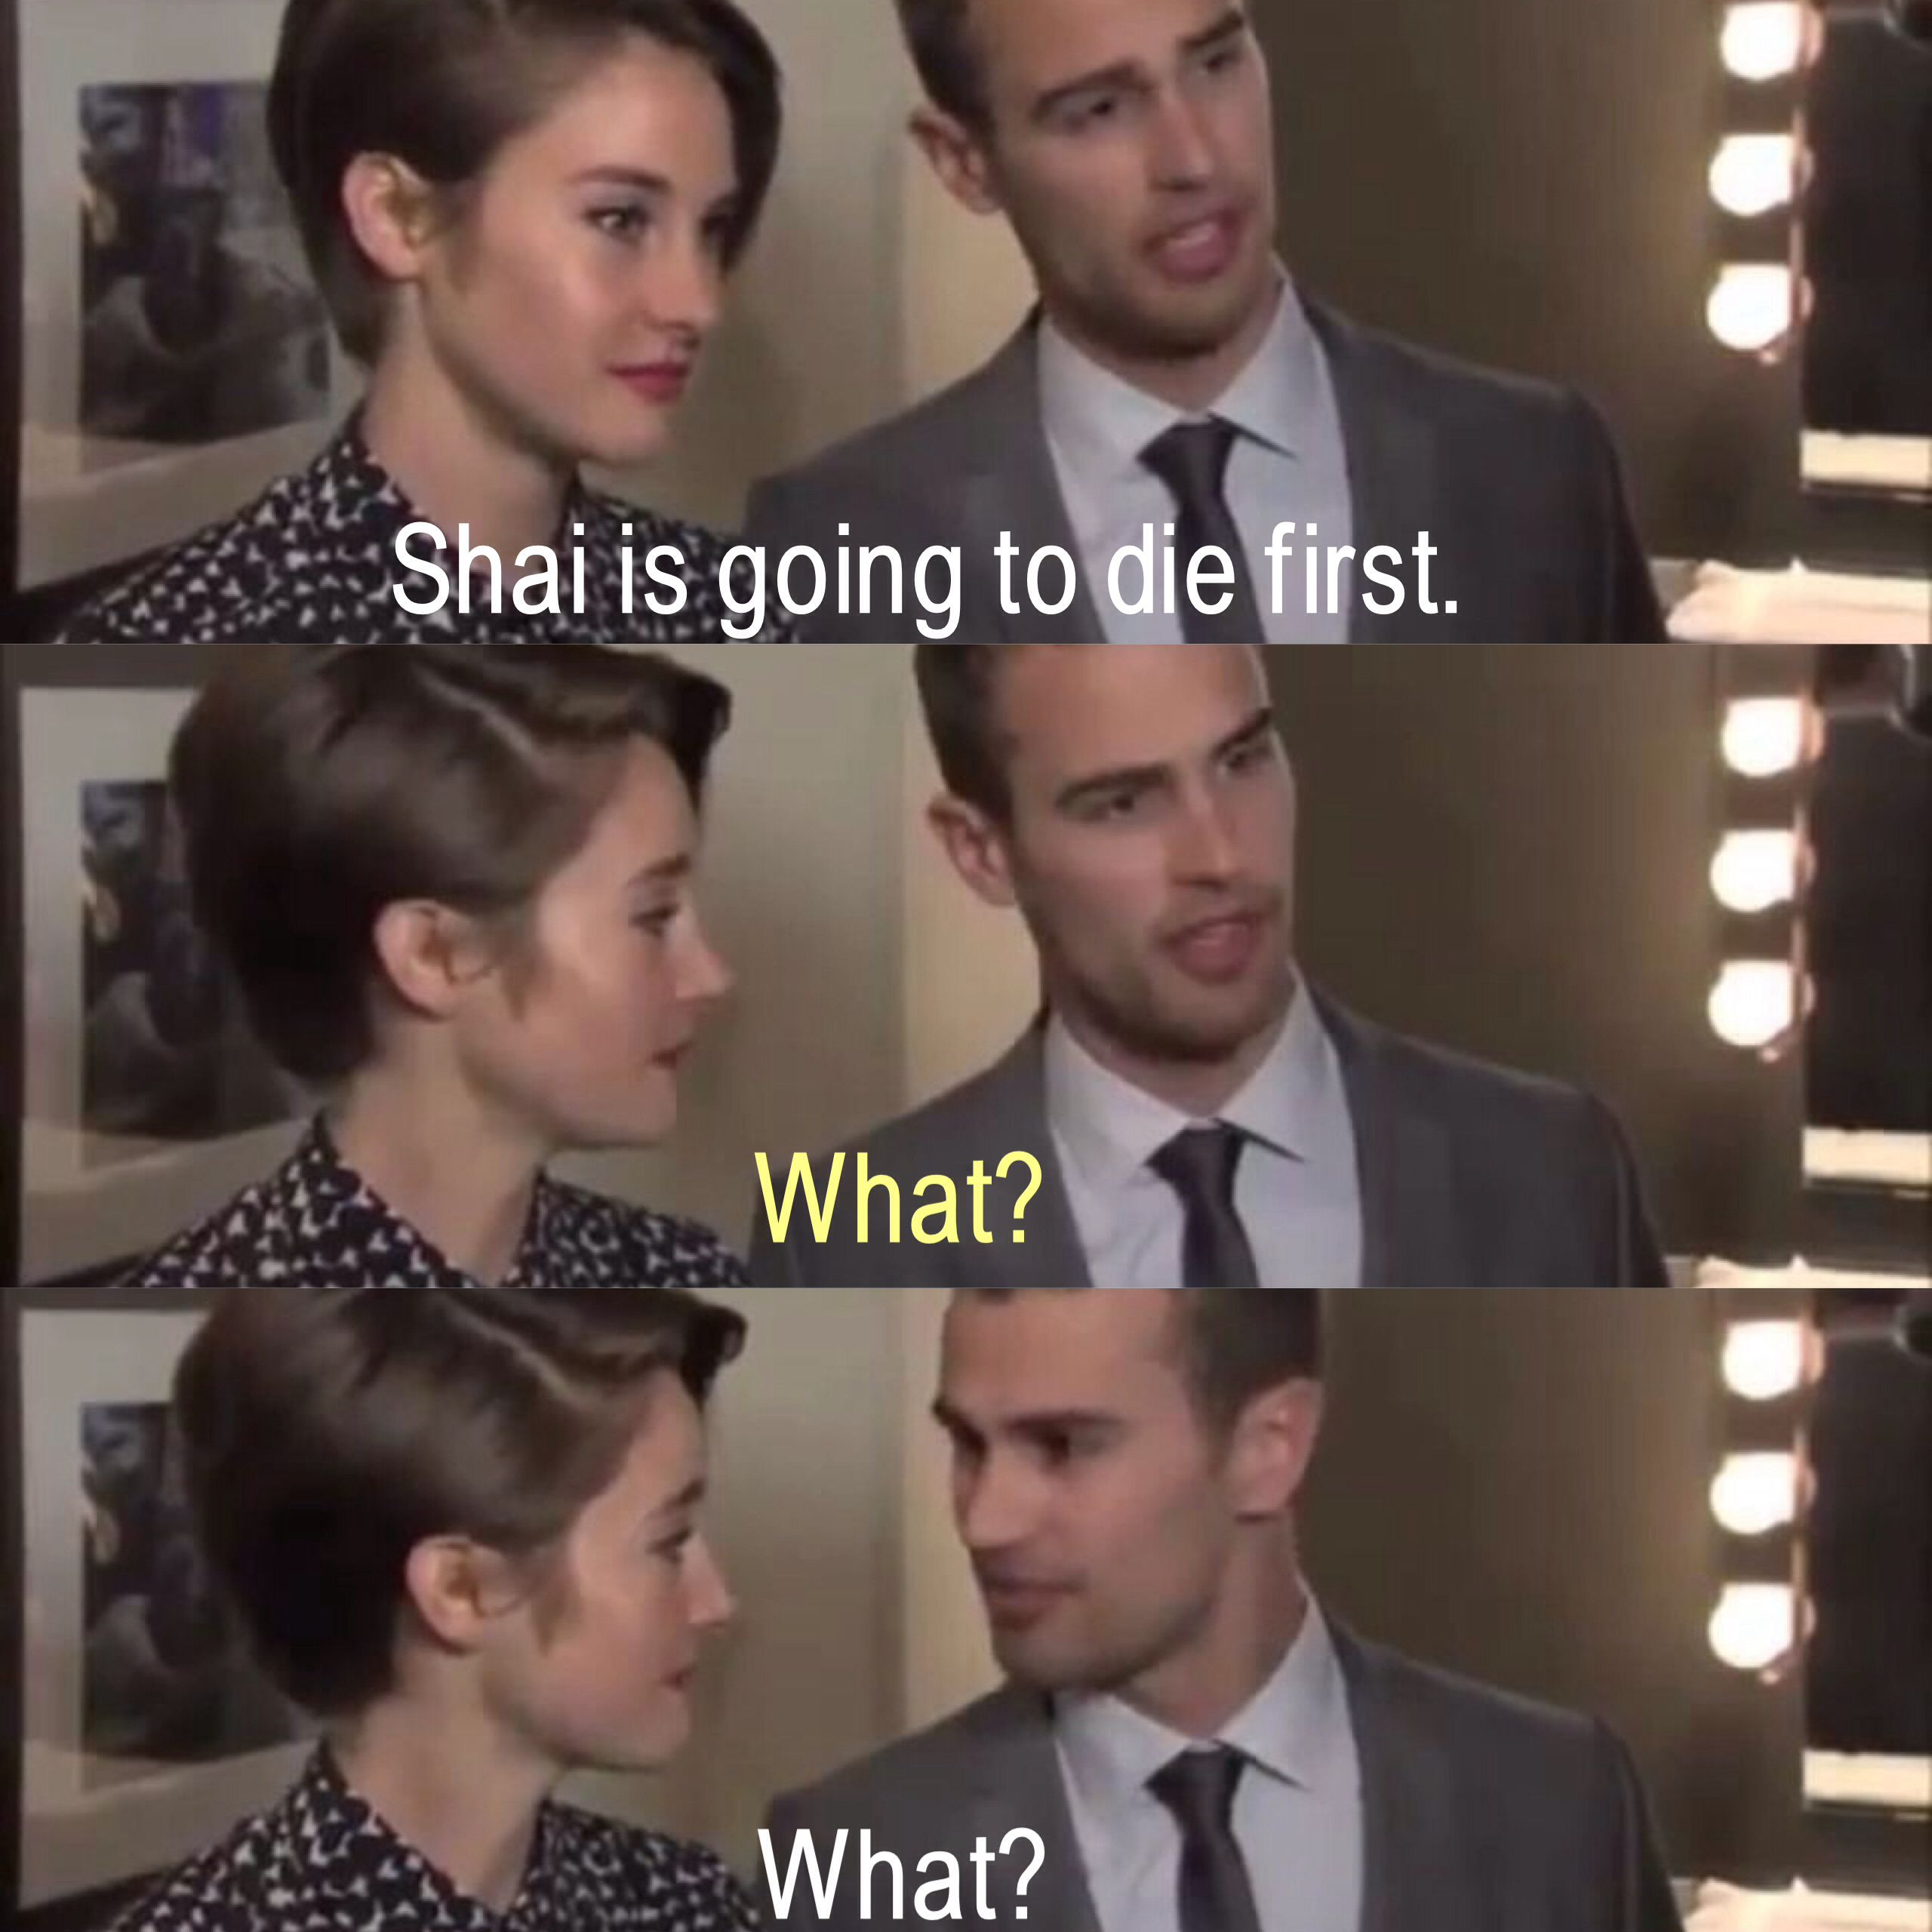 This was an interview about zip lining and other stunts theo was